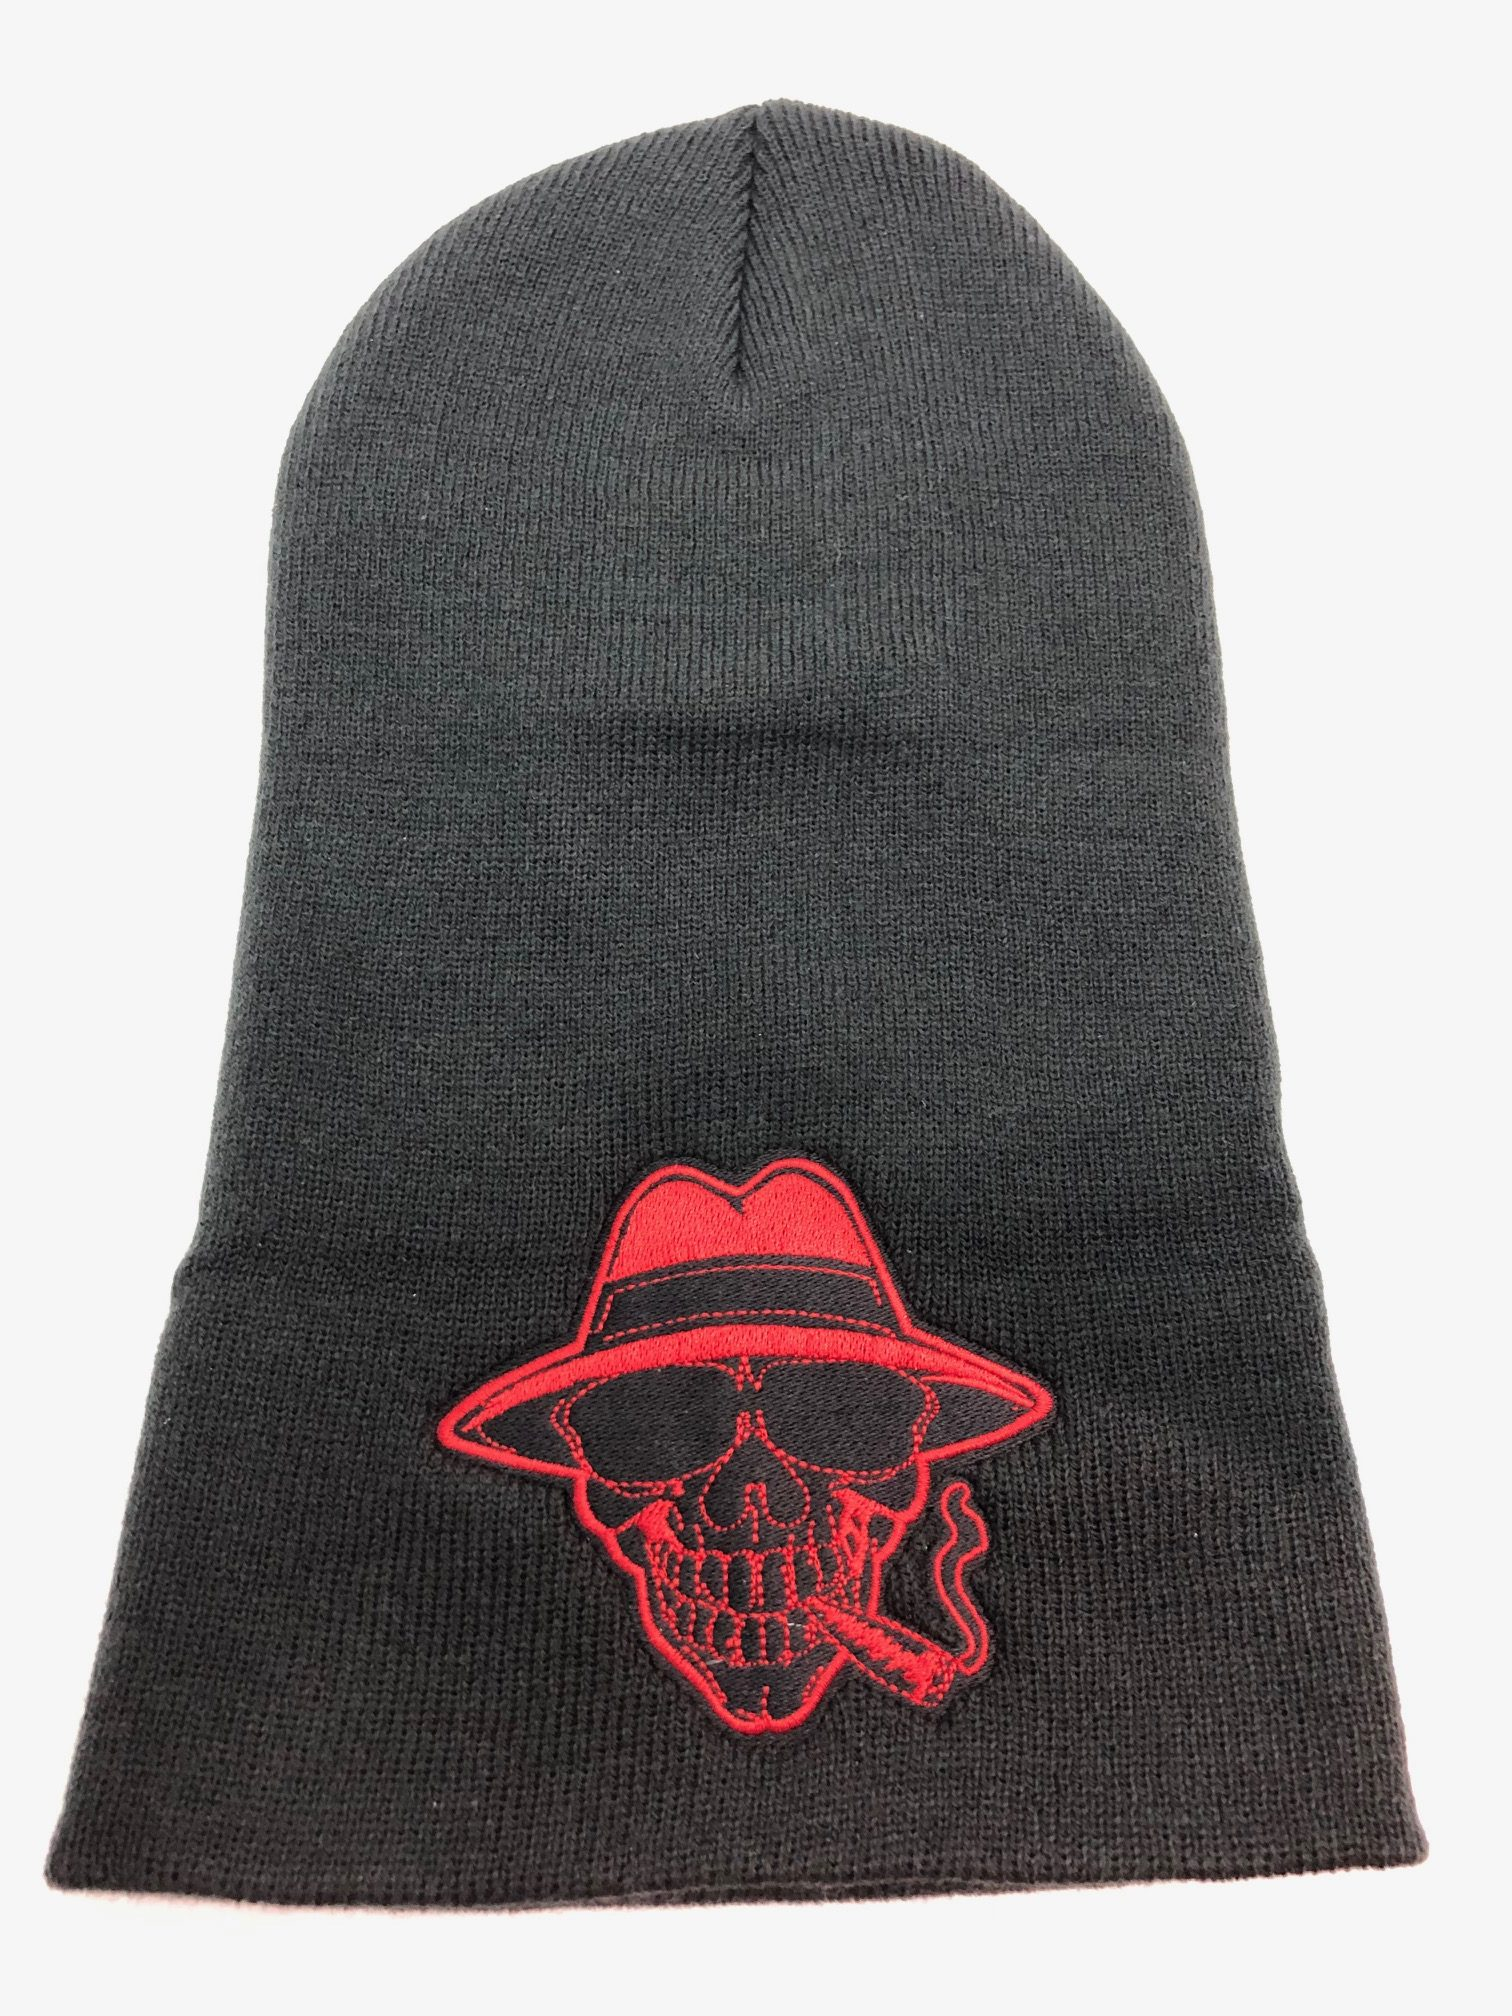 Mobstyle Blood Moon Beanie